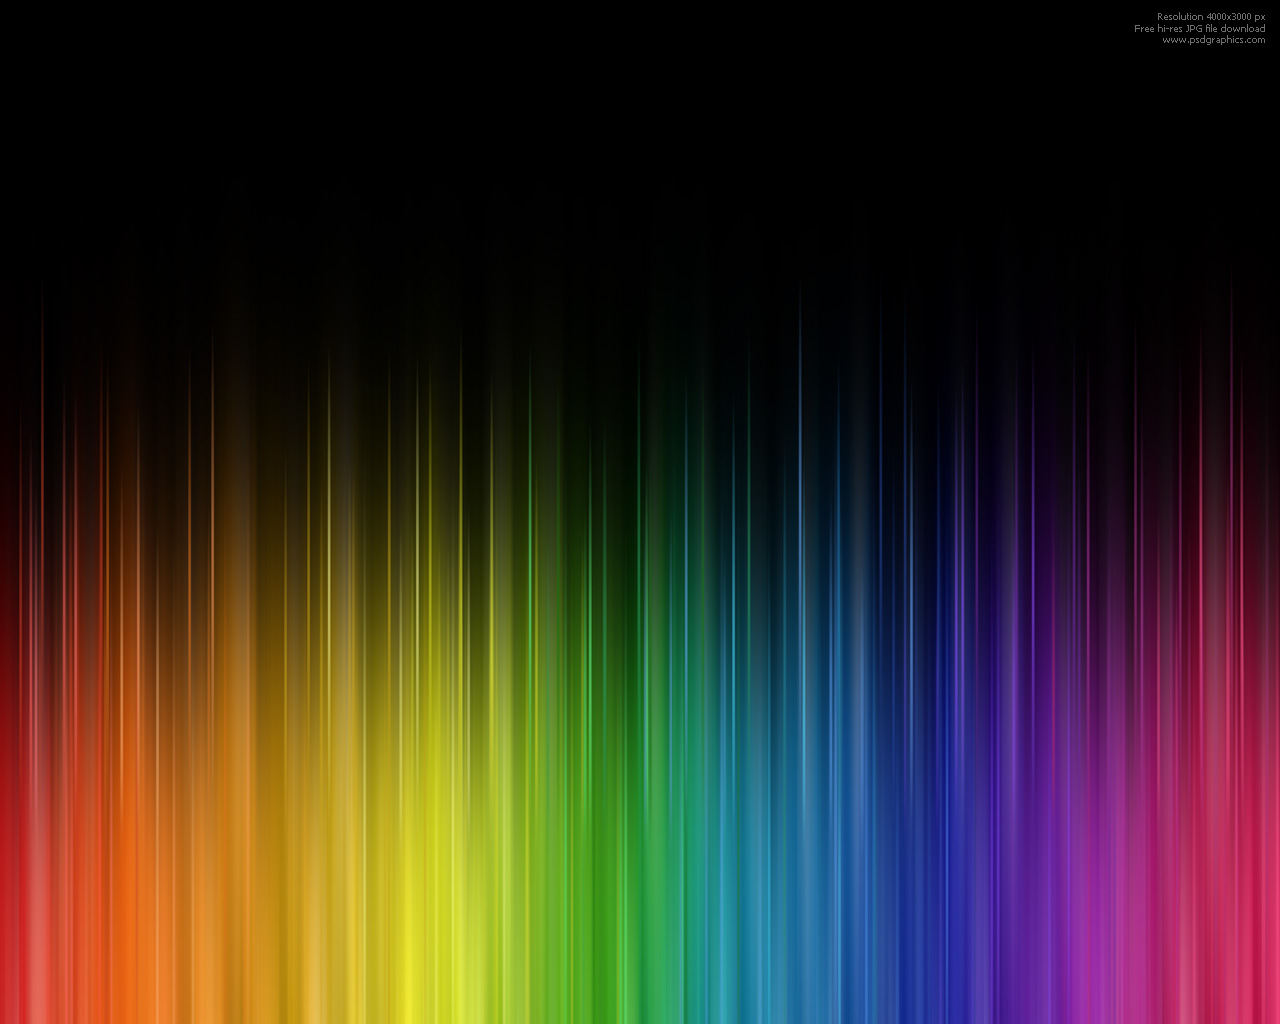 Awesome Colorful Backgrounds 2391 Hd Wallpapers in Others   Imagesci 1280x1024